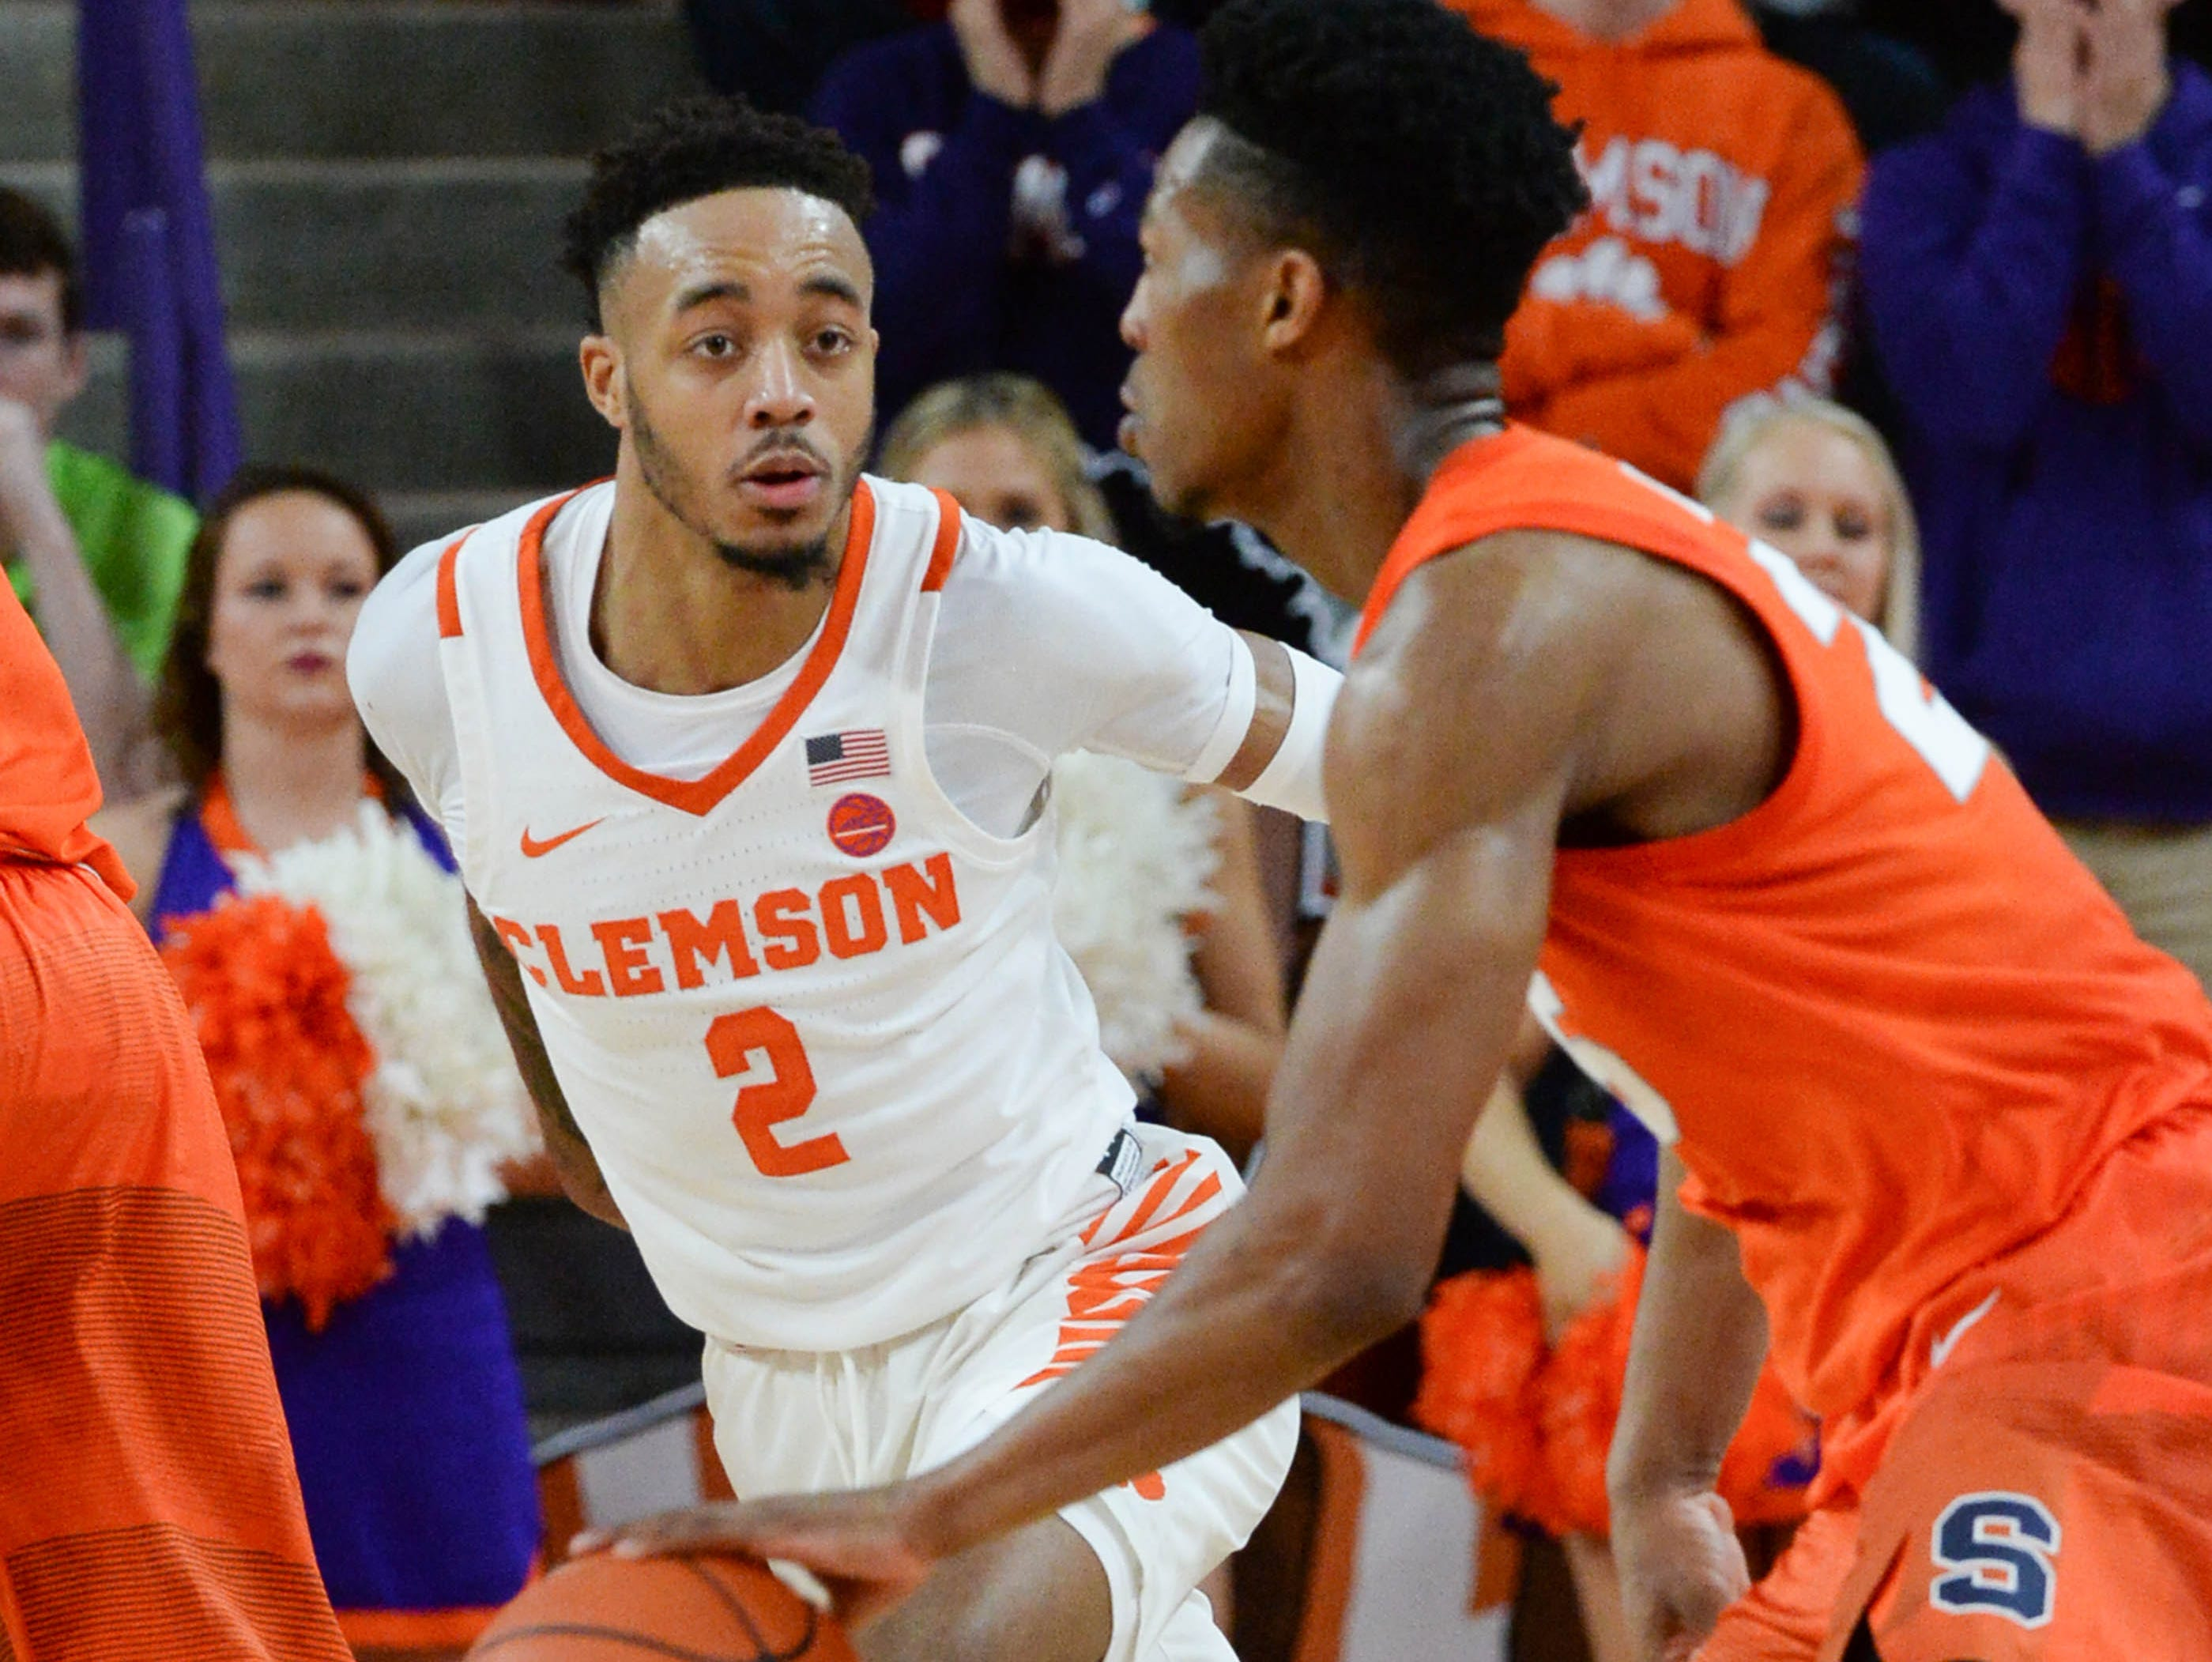 Clemson guard Marcquise Reed (2) defends Syracuse guard Frank Howard(23) during the second half in Littlejohn Coliseum in Clemson Saturday, March 9, 2019.